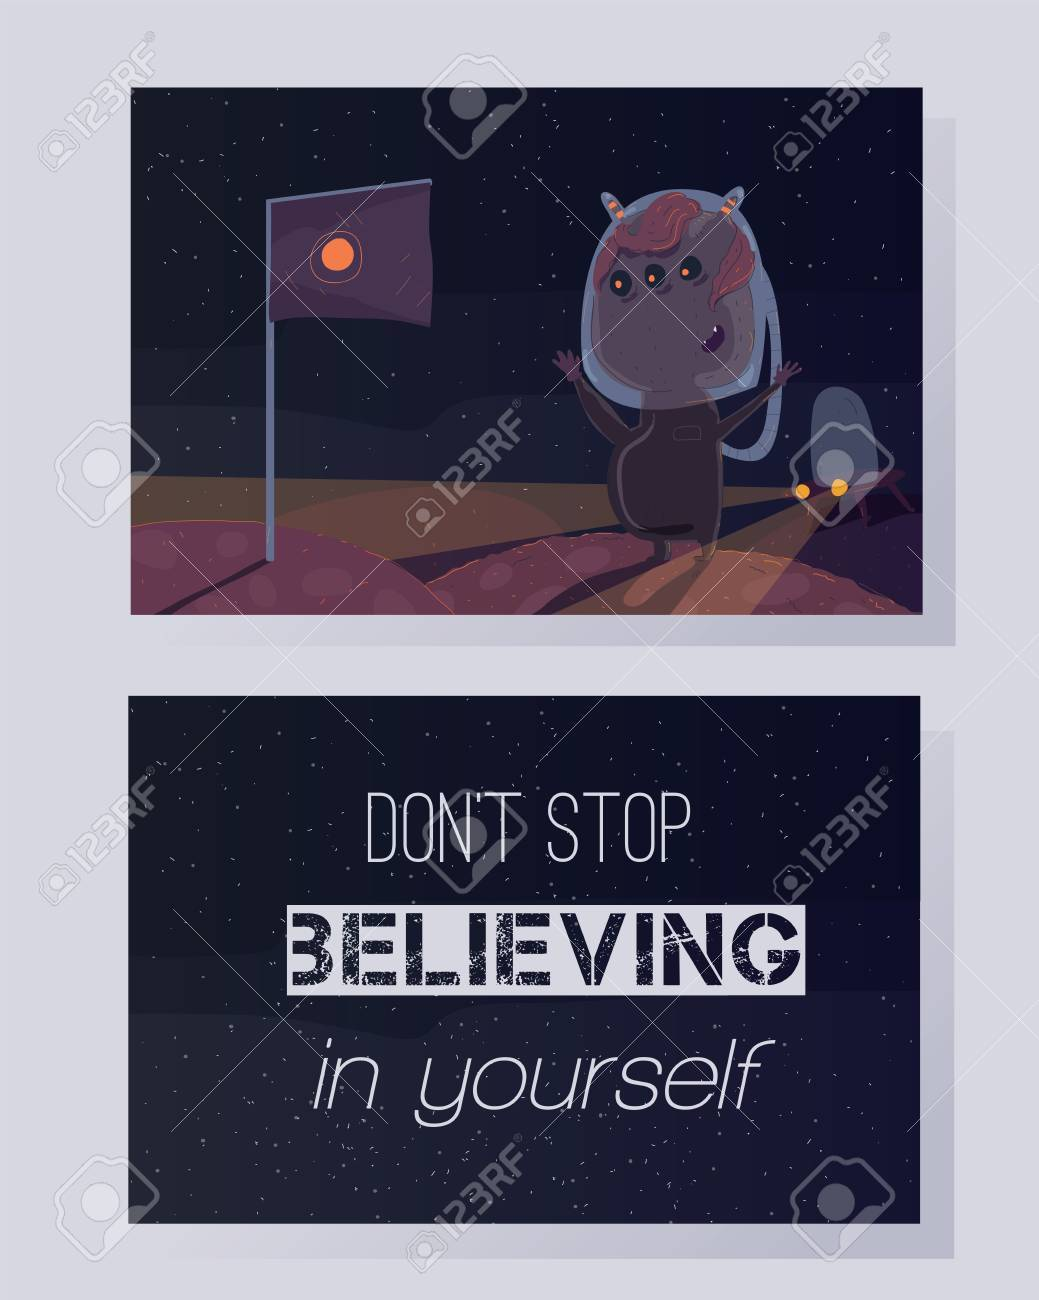 Donu0027t Stop Believing In Yourself. Motivating Quote On A Colorful Card. Space